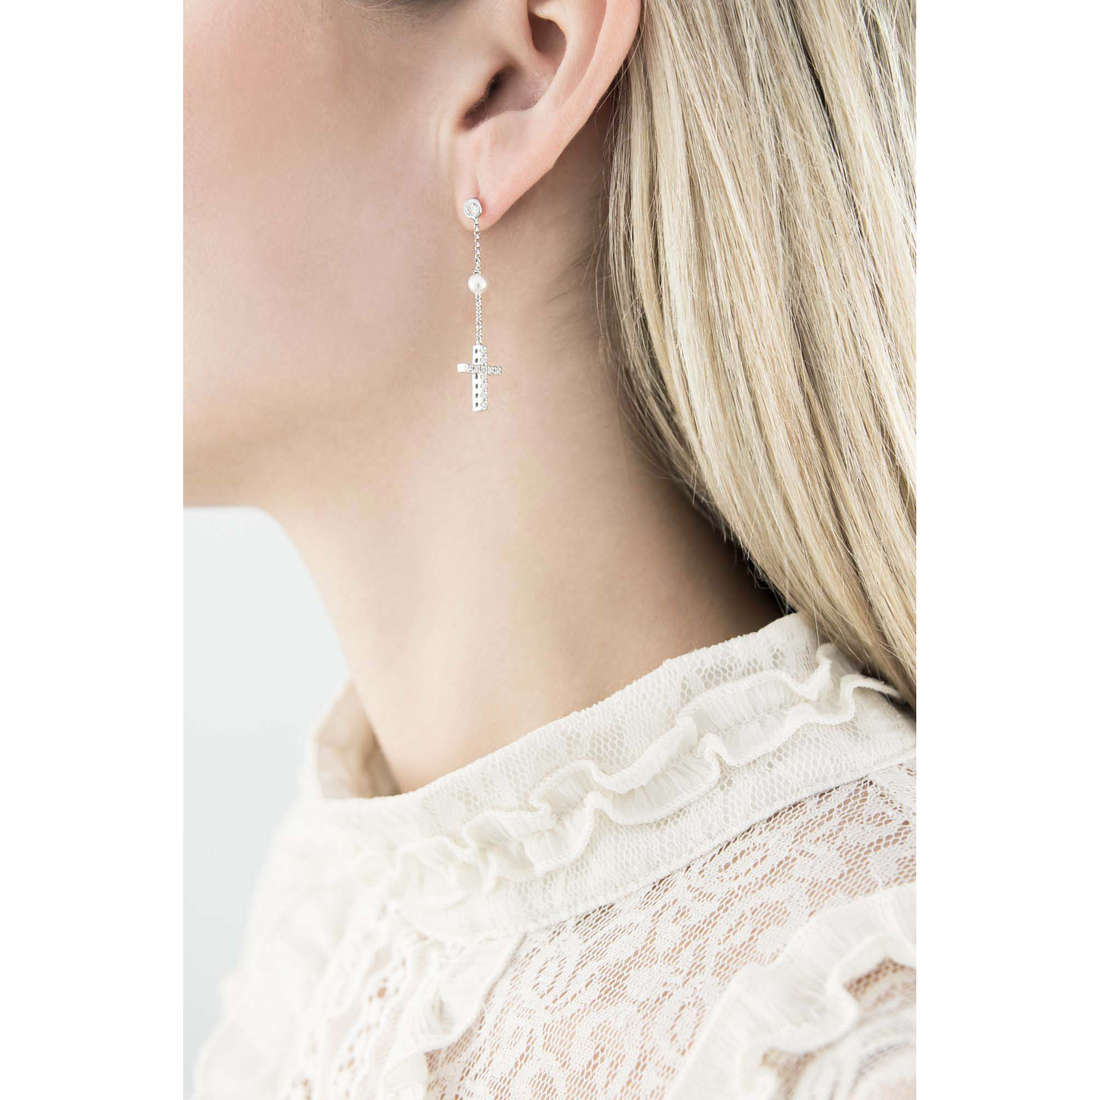 Comete earrings Holy woman ORA 102 indosso